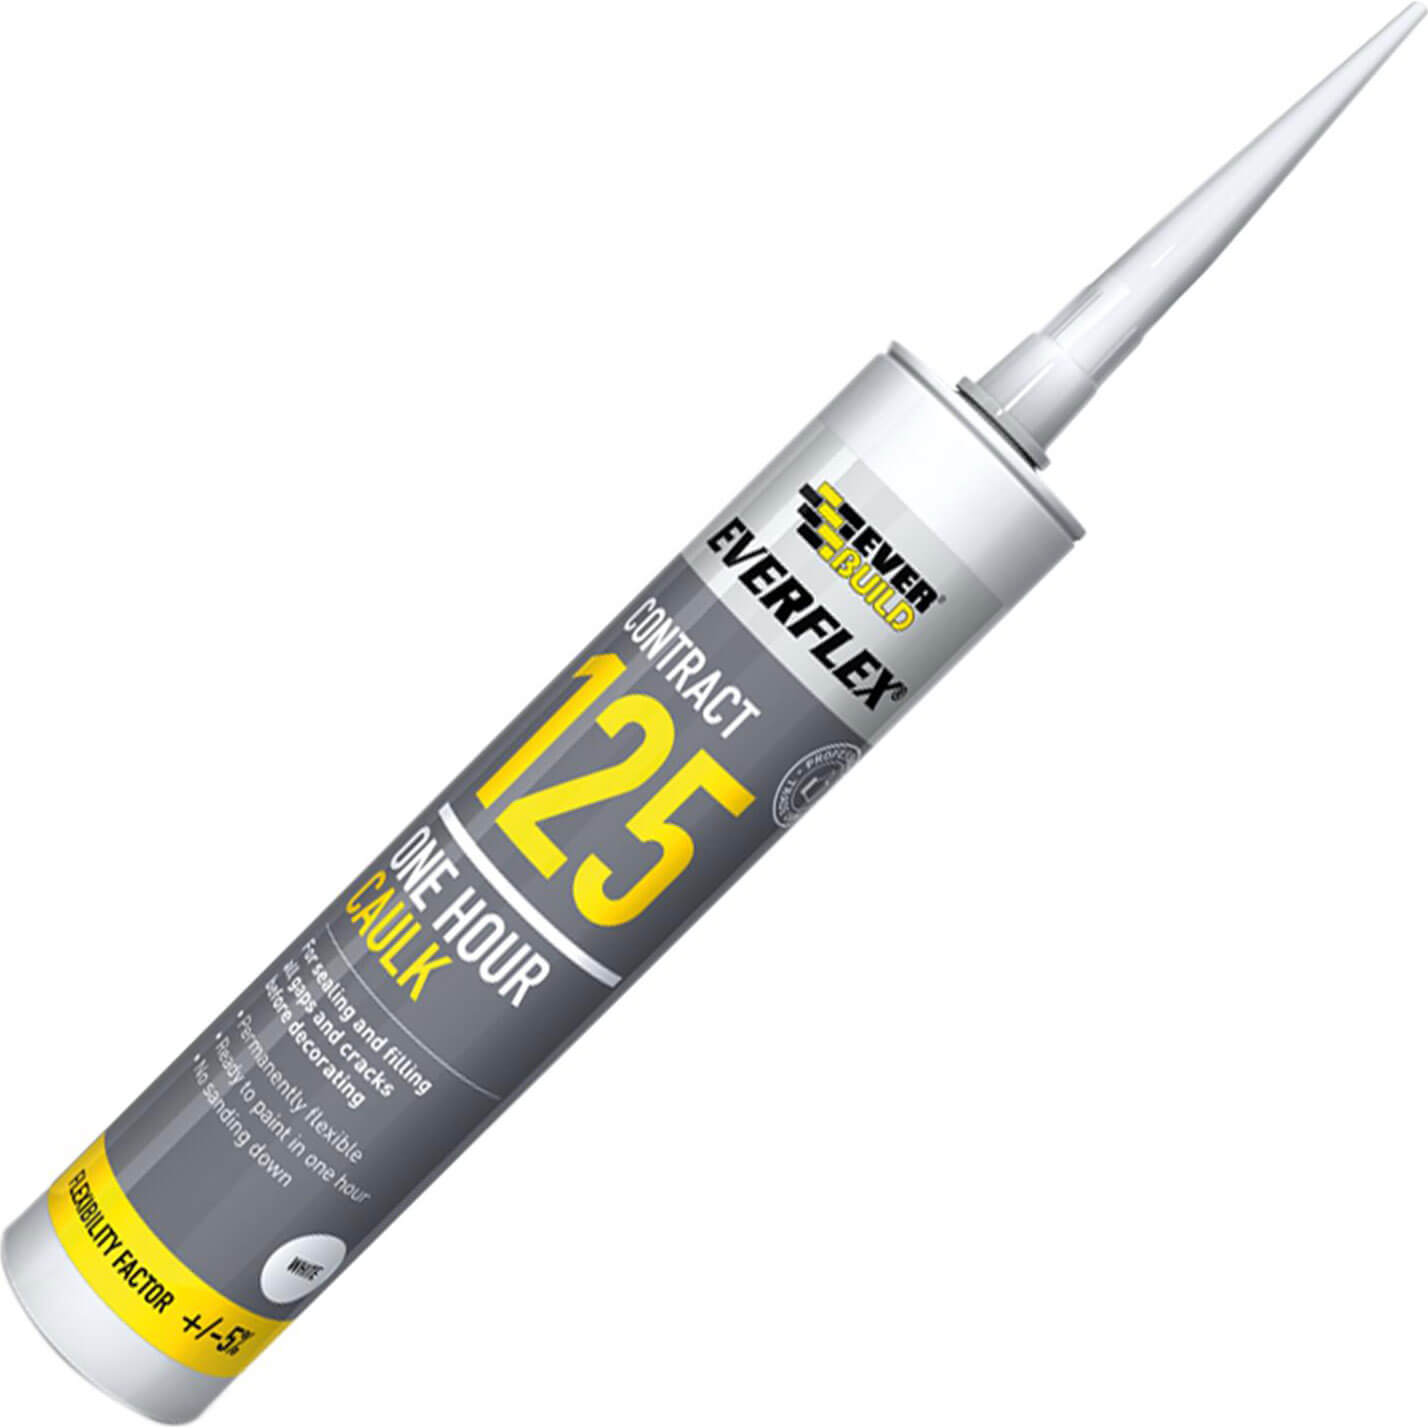 Tooled Up/Sealants & Adhesives/Sealants/Everbuild One Hour Decorators Caulk Brown